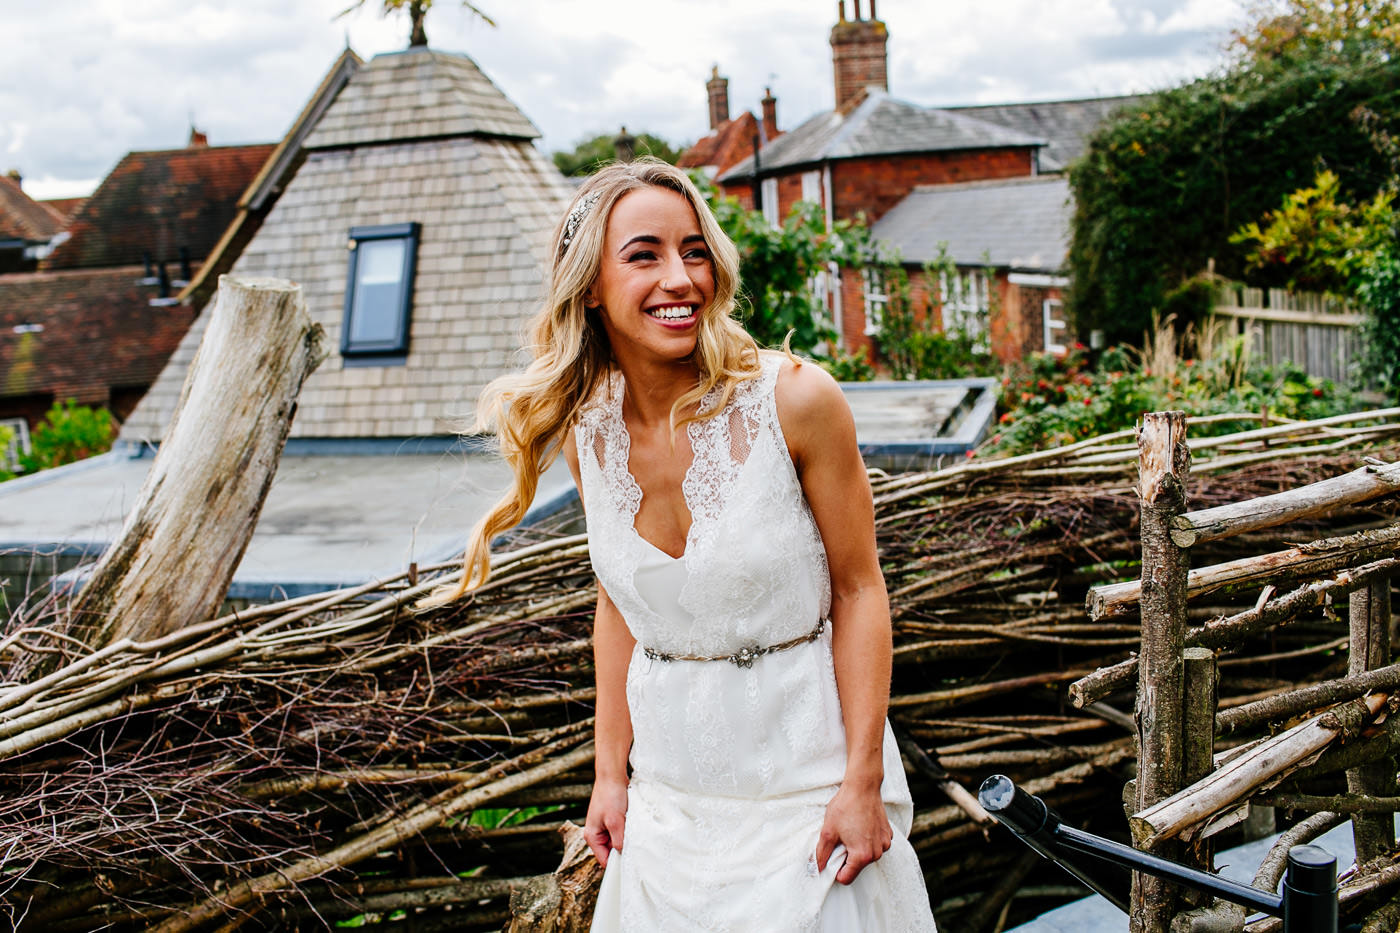 The-bell-in-Ticehurst-pub-kent-wedding-photographer-London-Epic-Love-Story-037